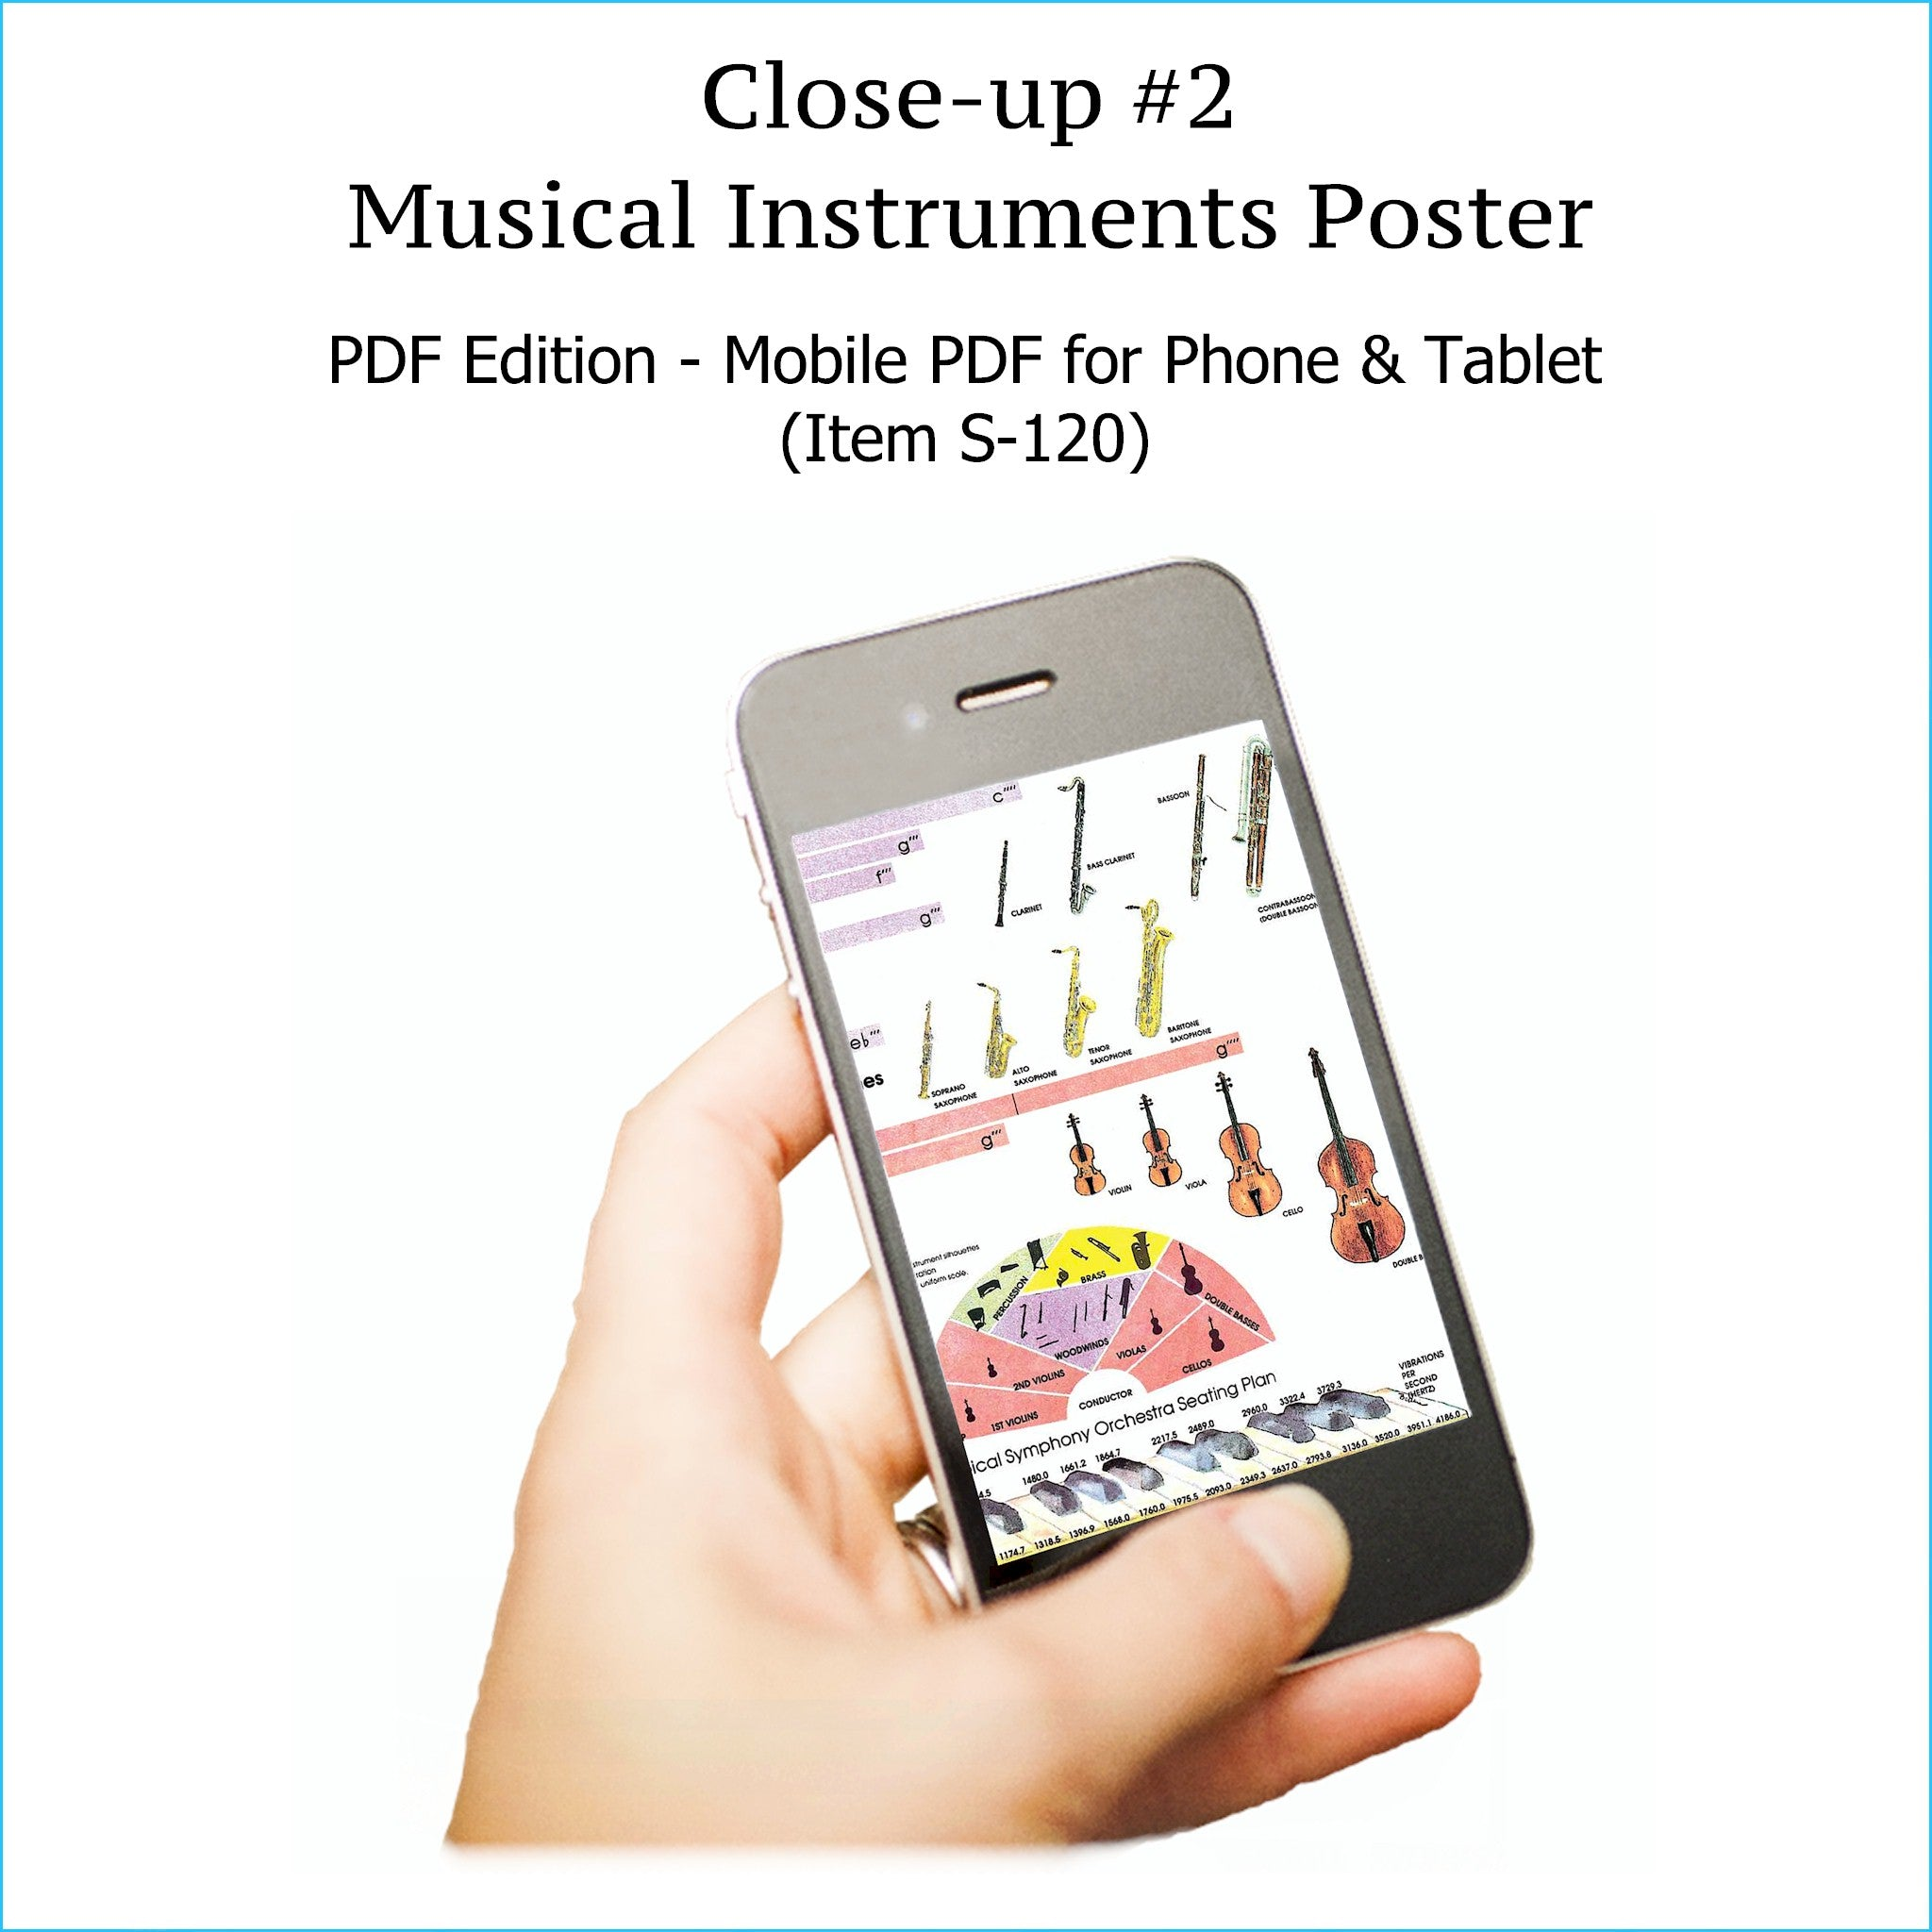 Item S-120: Musical Instruments Poster on a SINGLE SCREEN. Zoom In or Out Like a Google Map. Provides Info for Creating, Arranging, & Mixing. FREE Download Protection. Printable.